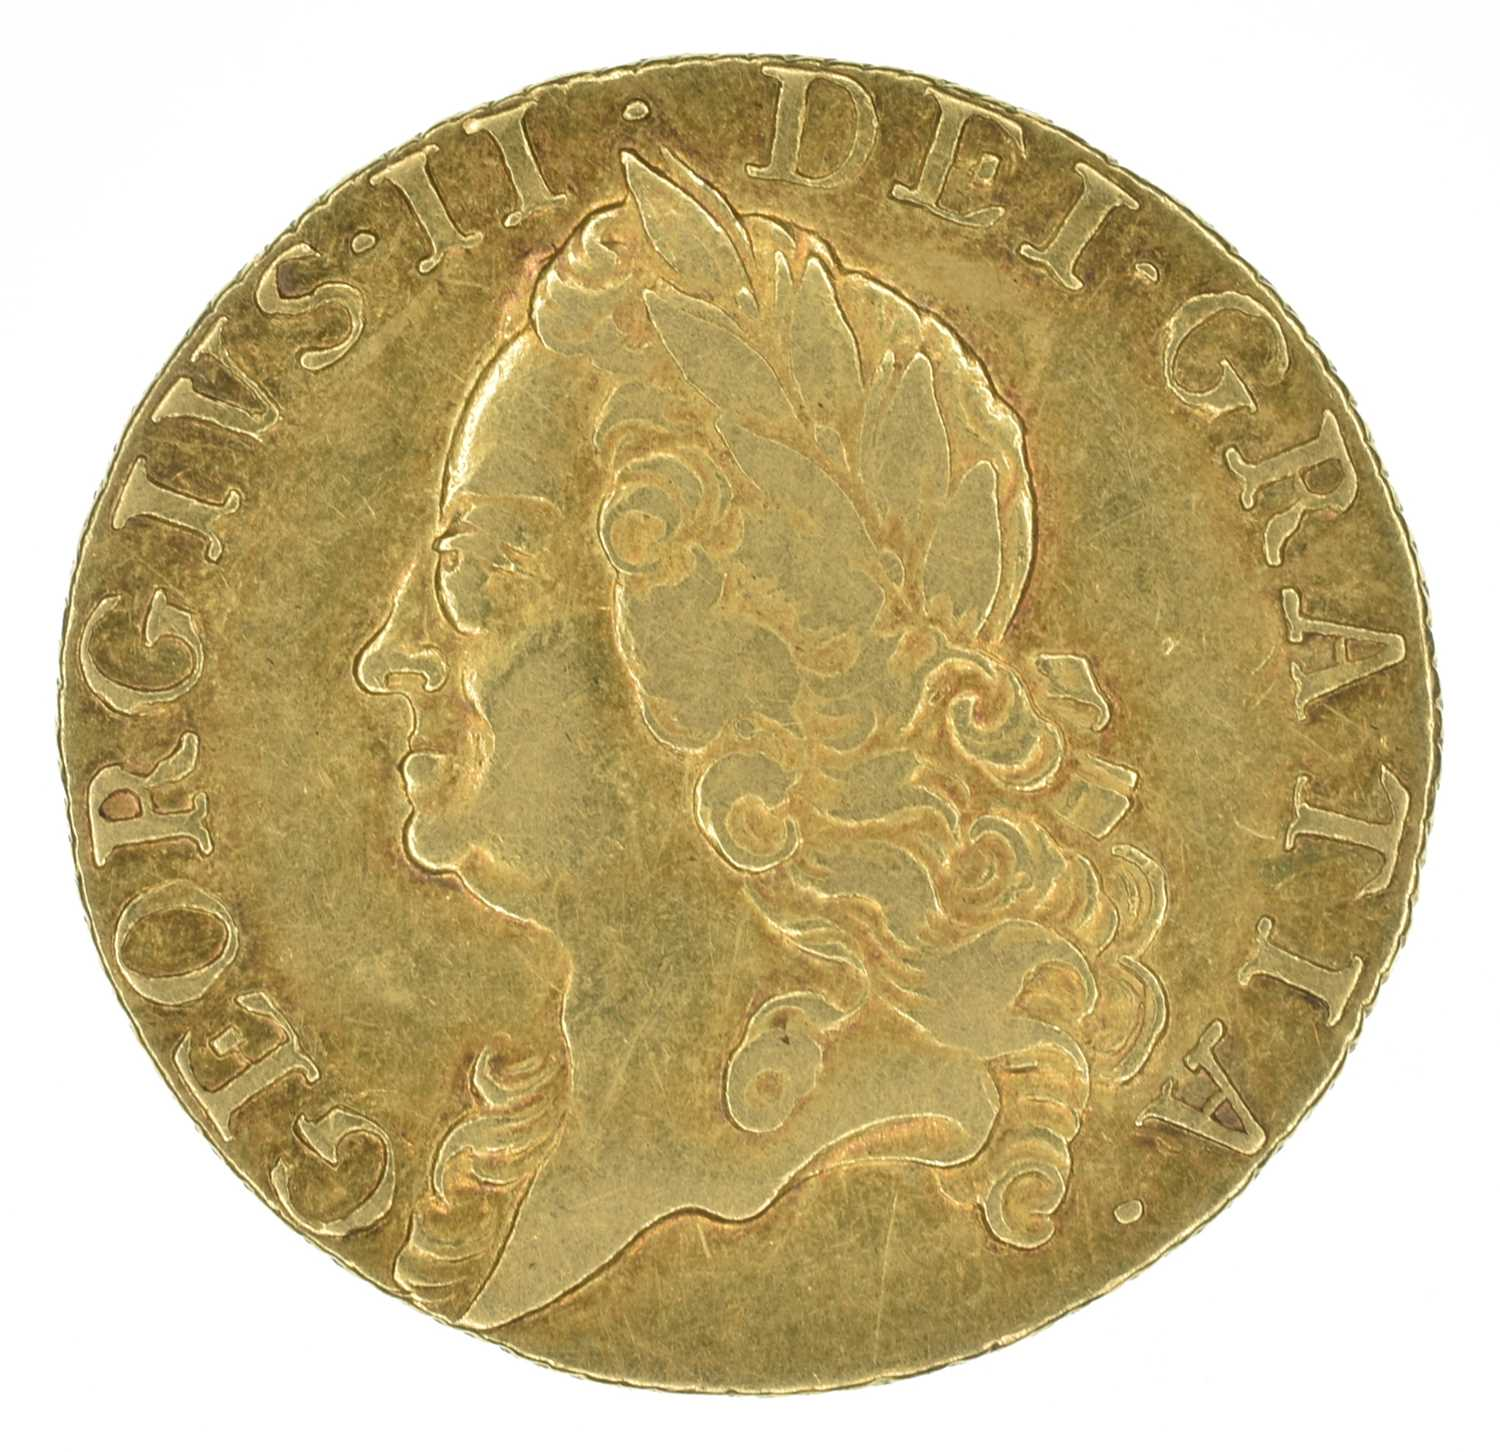 Lot 42 - King George II, Guinea, 1760.